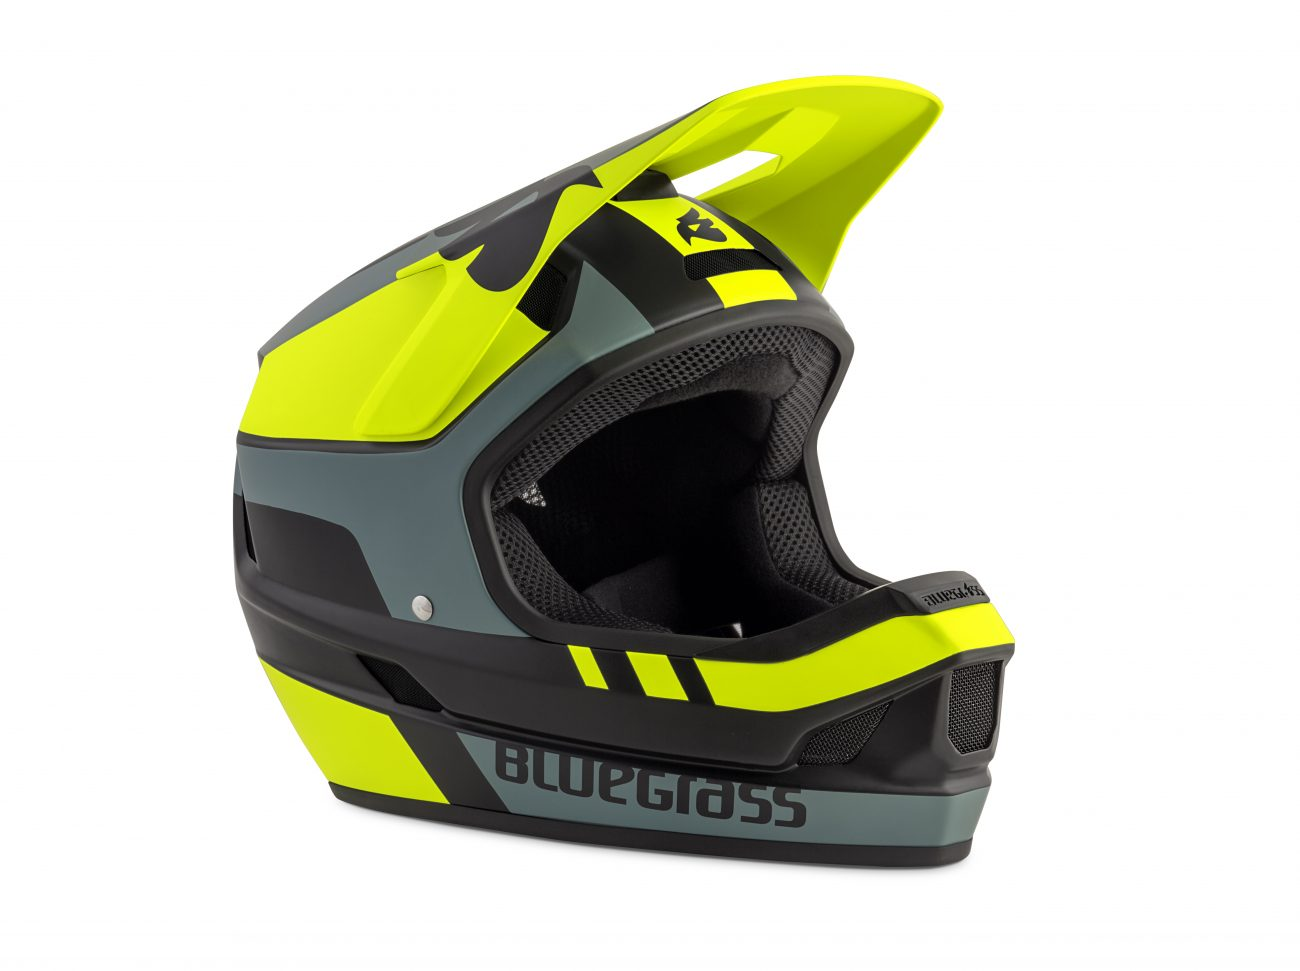 CASCO BLUEGRASS LEGIT PARA ENDURO Y DESCENSO MTB